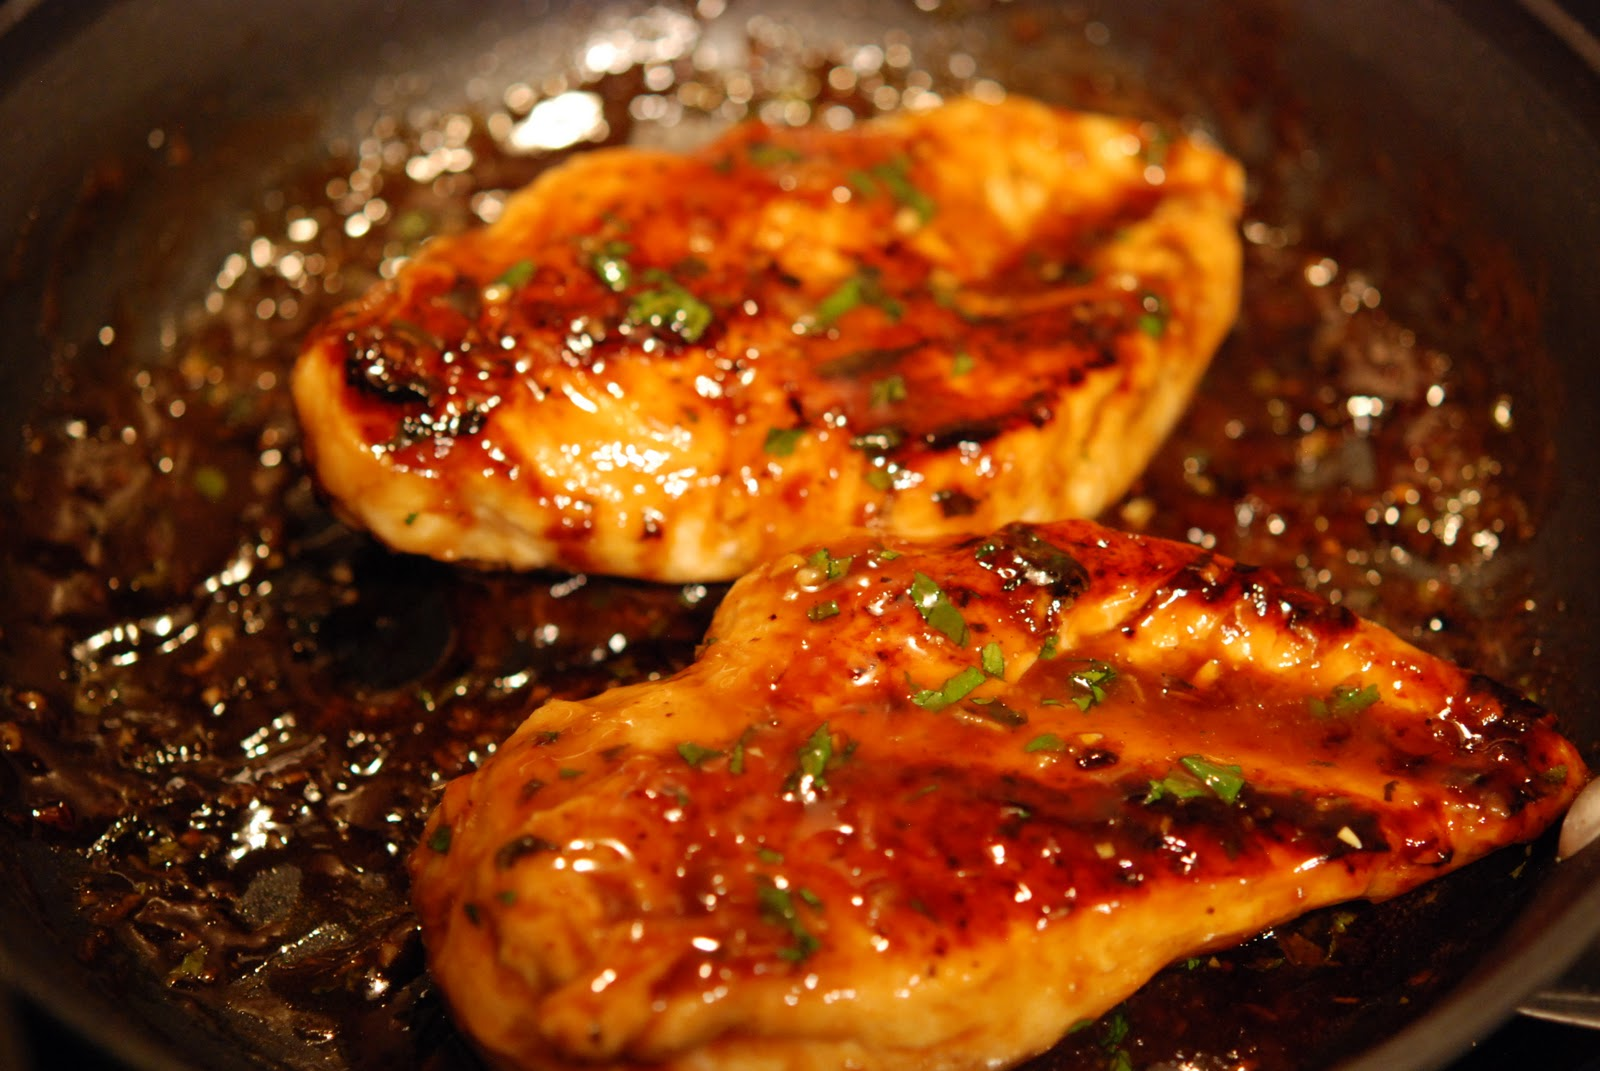 marys bites: Hoisin Glazed Chicken